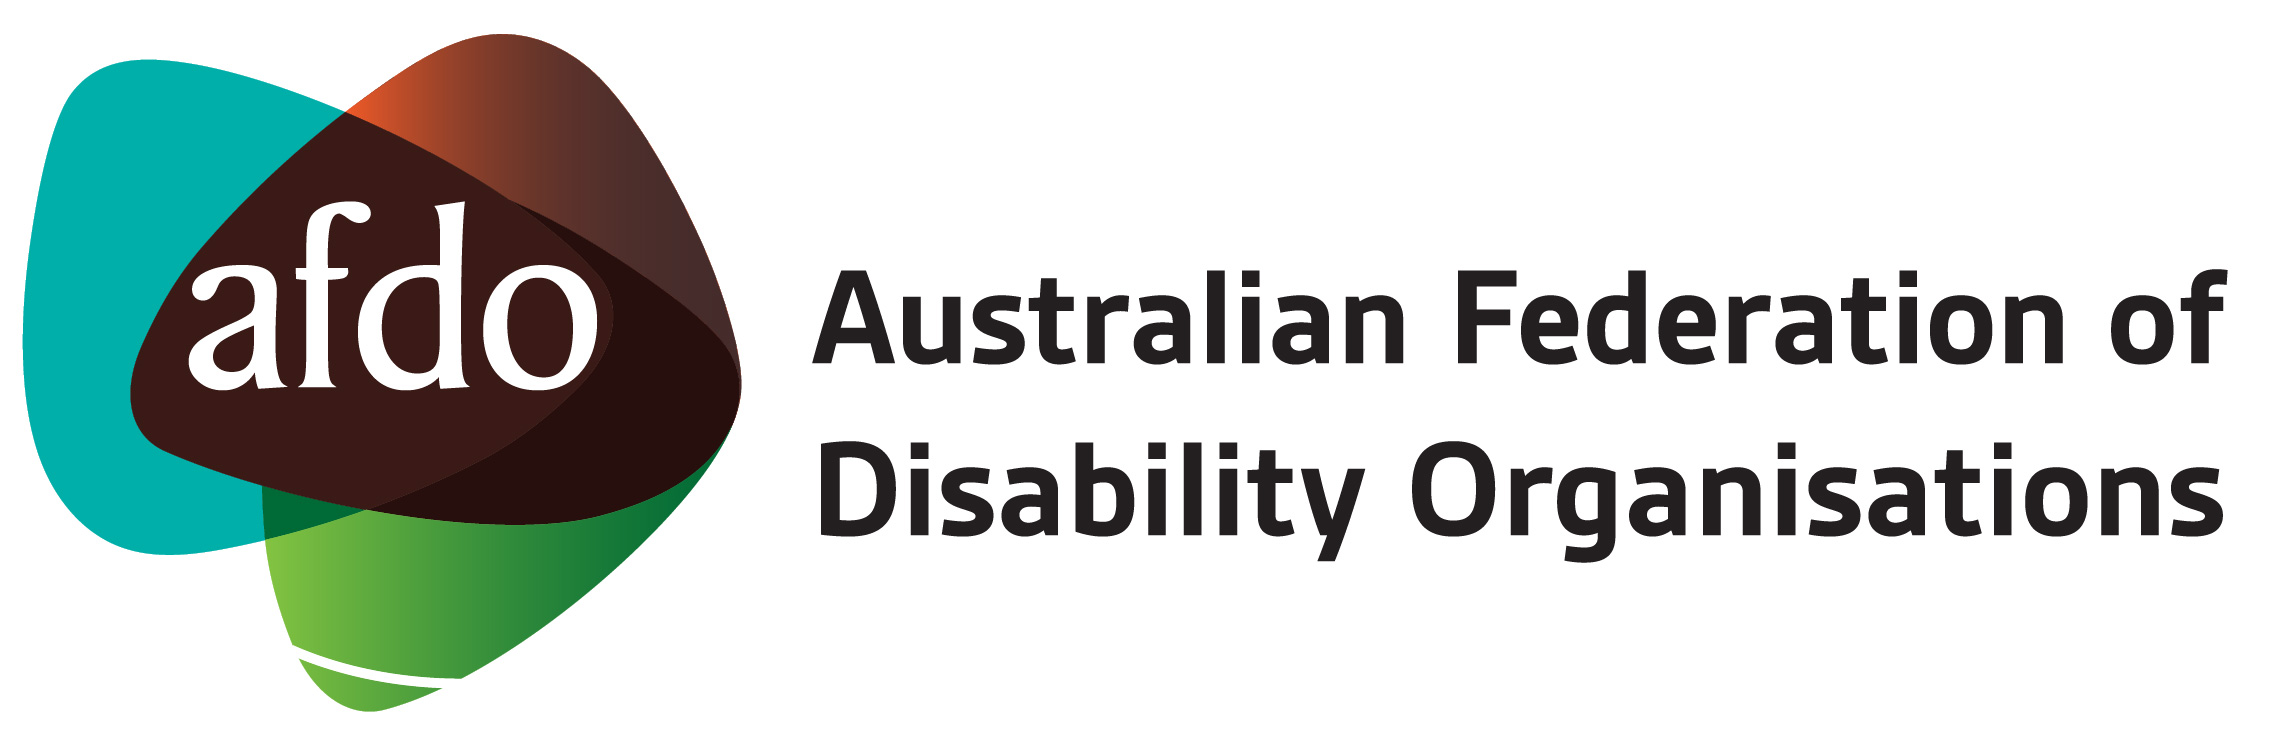 Australian Federation of Disability Organisations - Back to home page